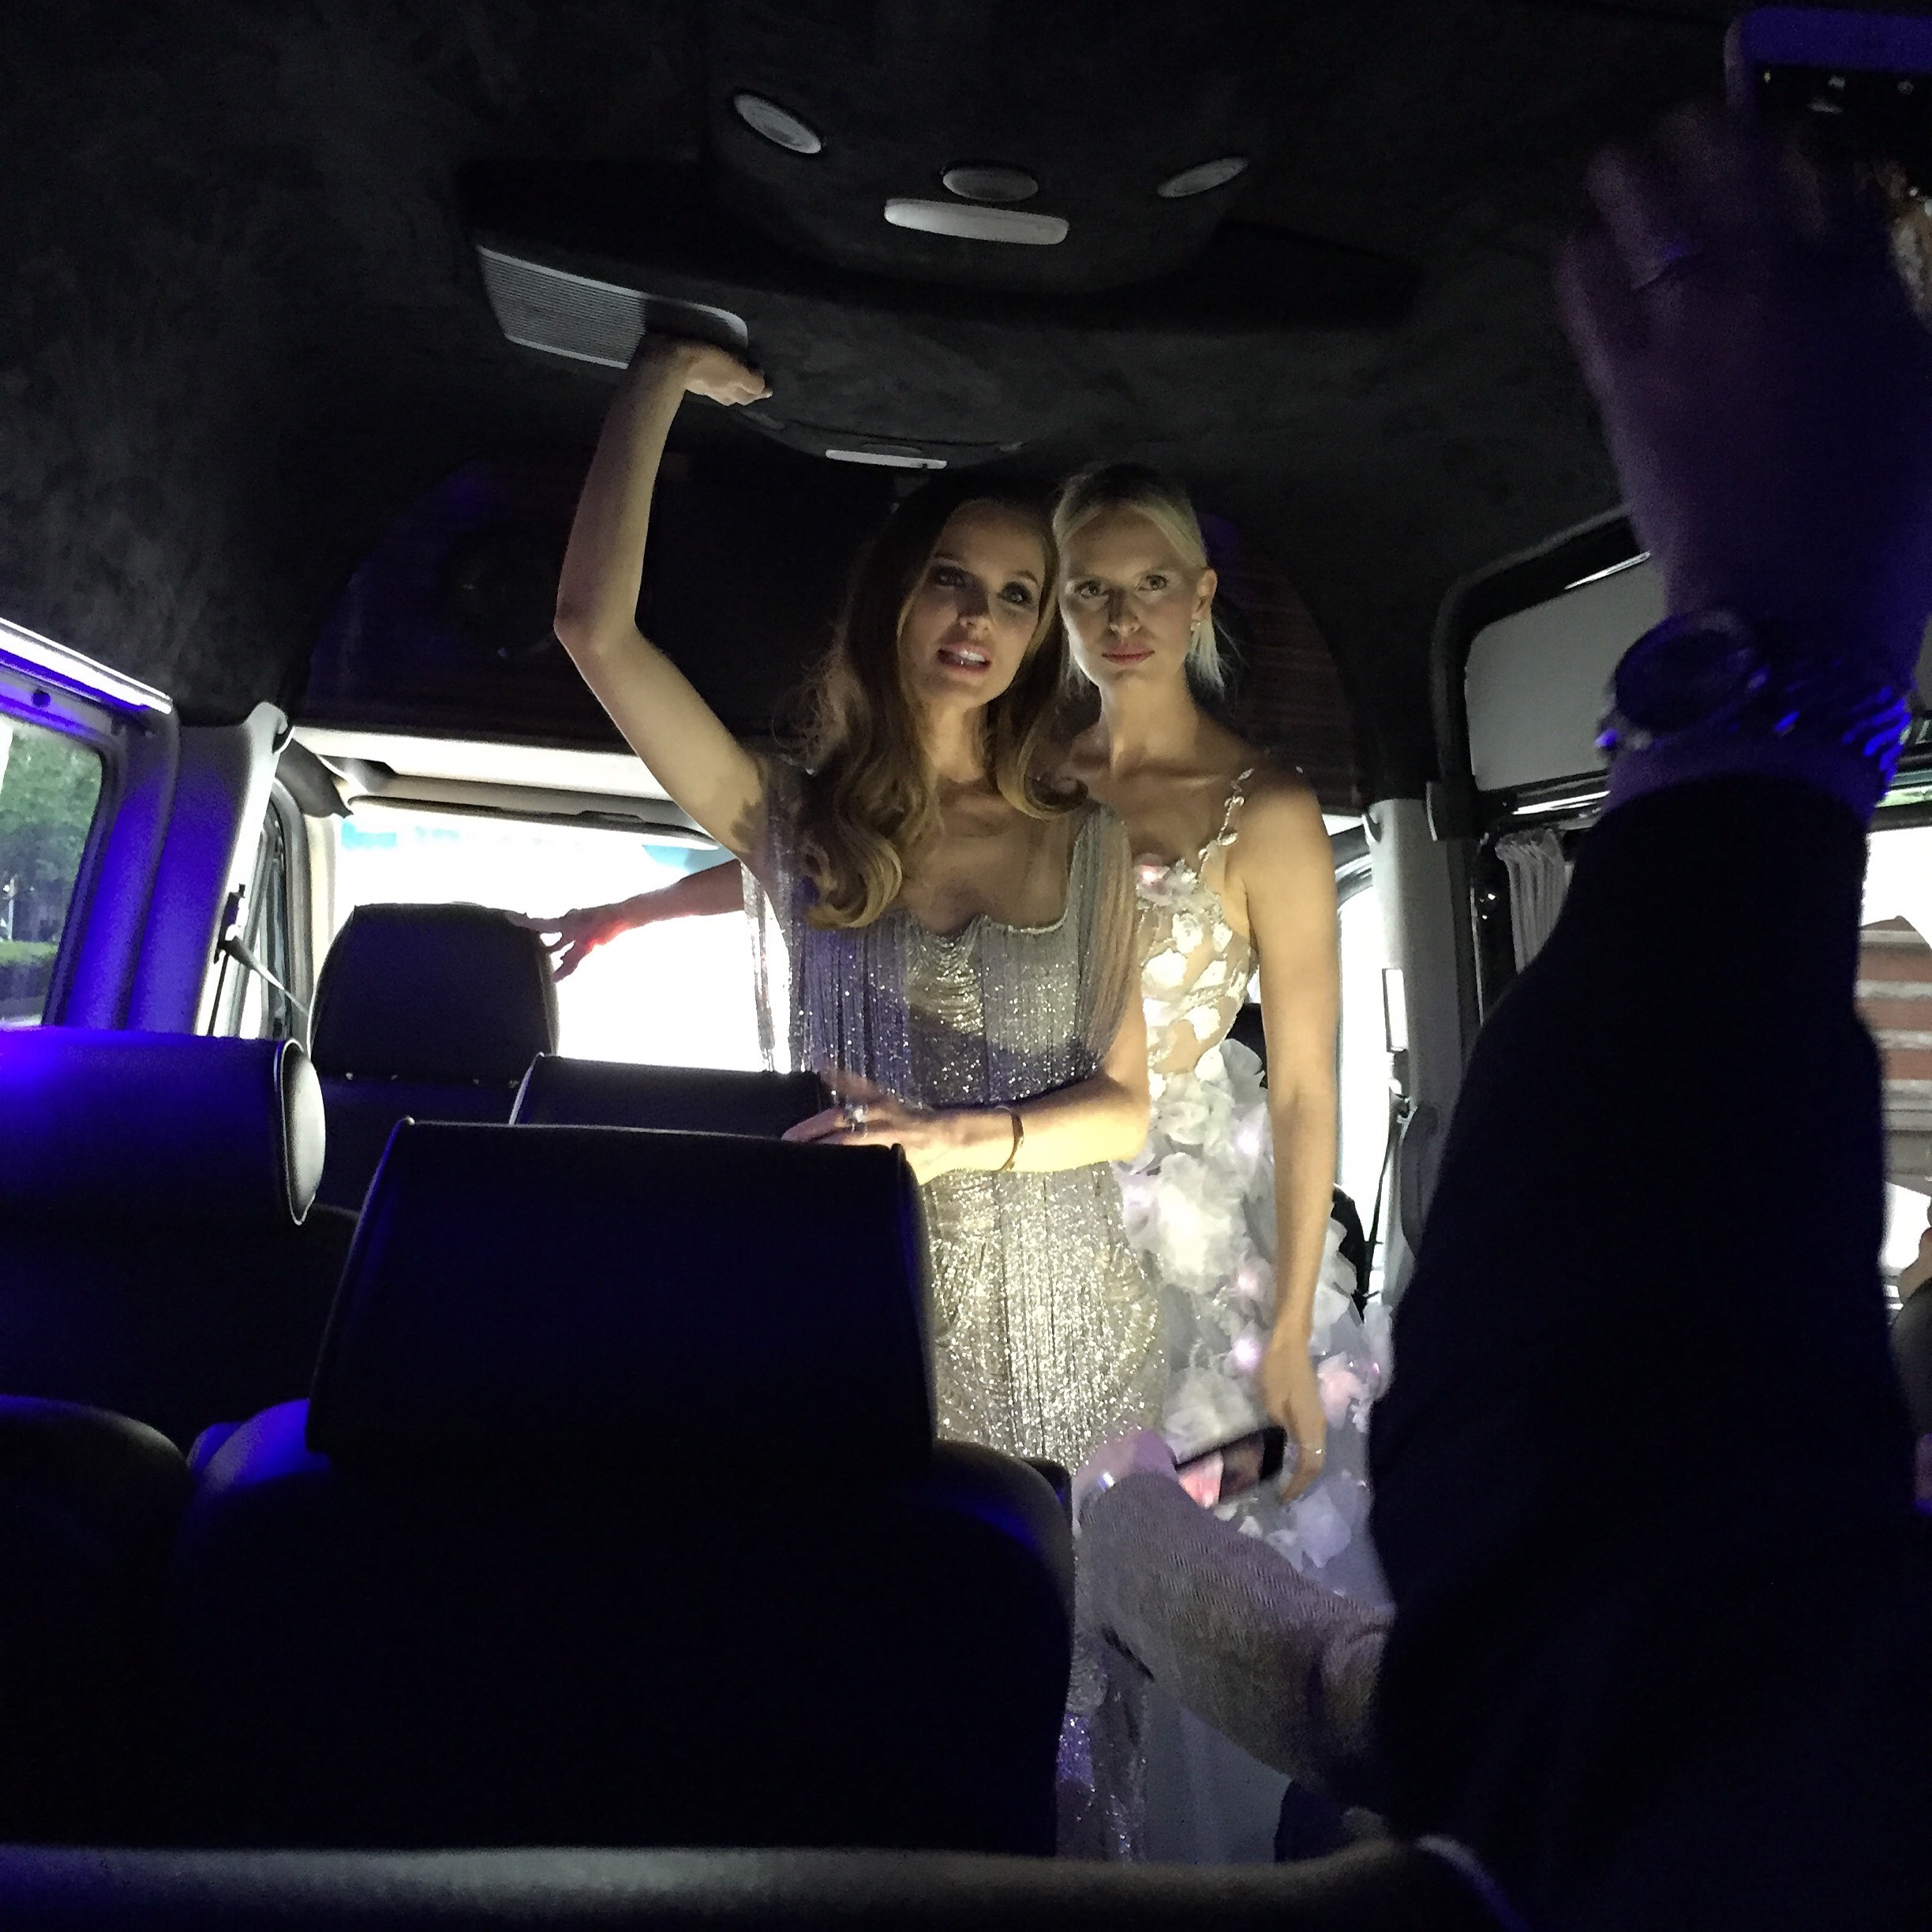 Georgina Chapman and Karolina Kurkova in the van on the way to the gala while we continue to upload new code to the dress